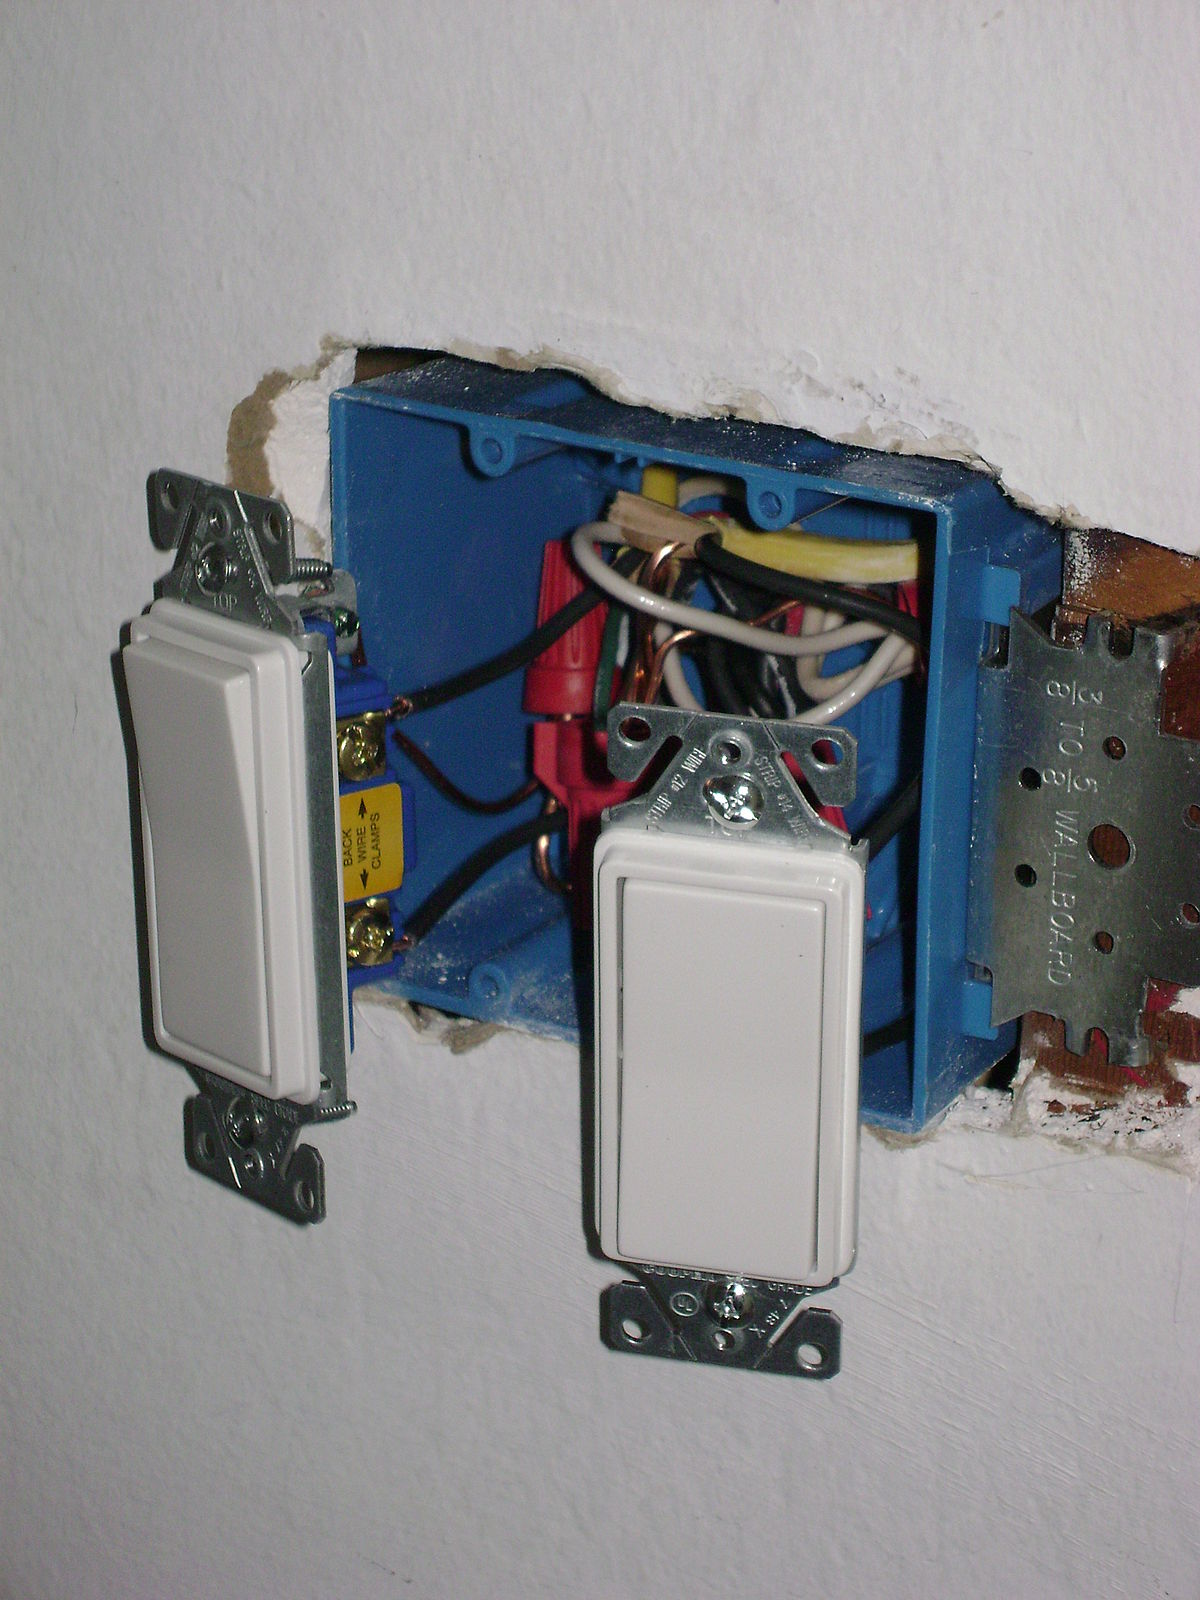 f063 opened in a house fuse box | wiring library  wiring library